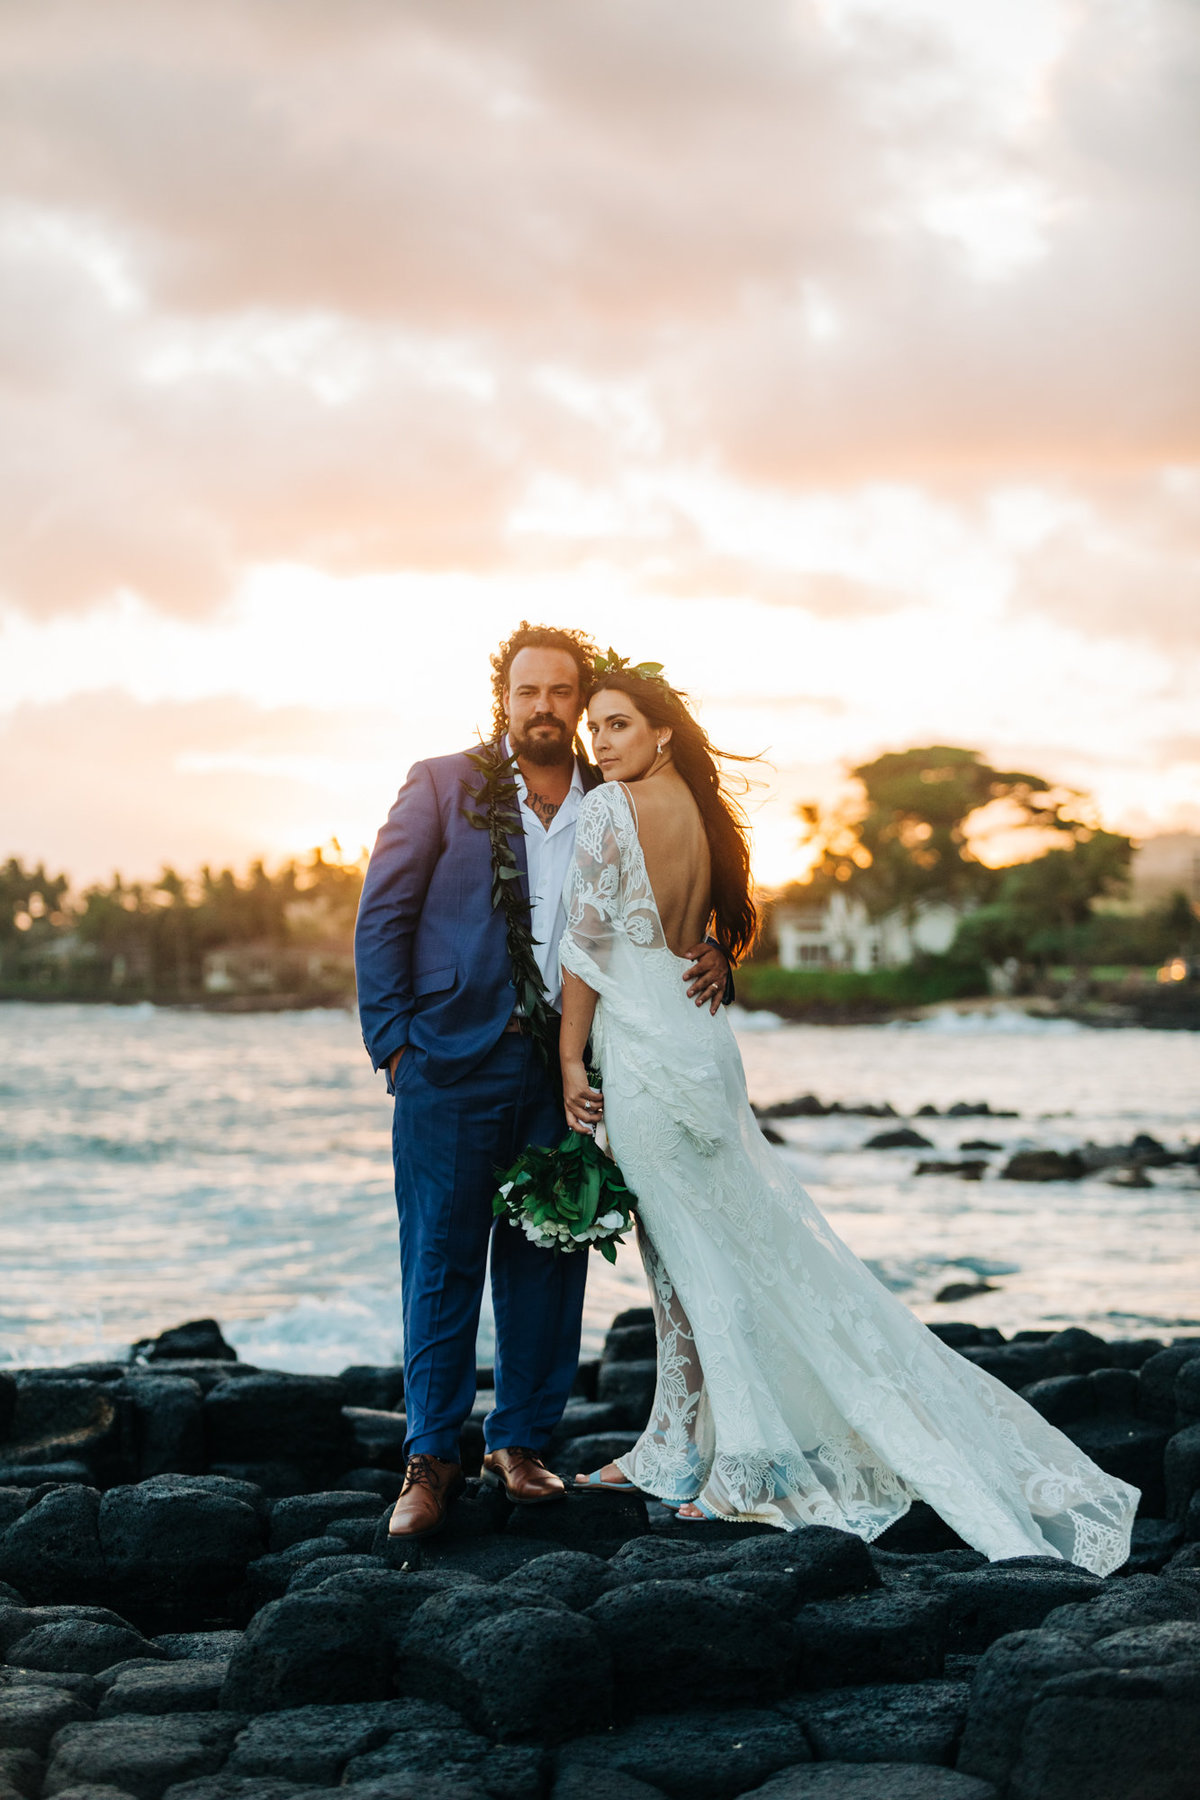 bride in lace dress and groom on rocks over the ocean looking out at sunset